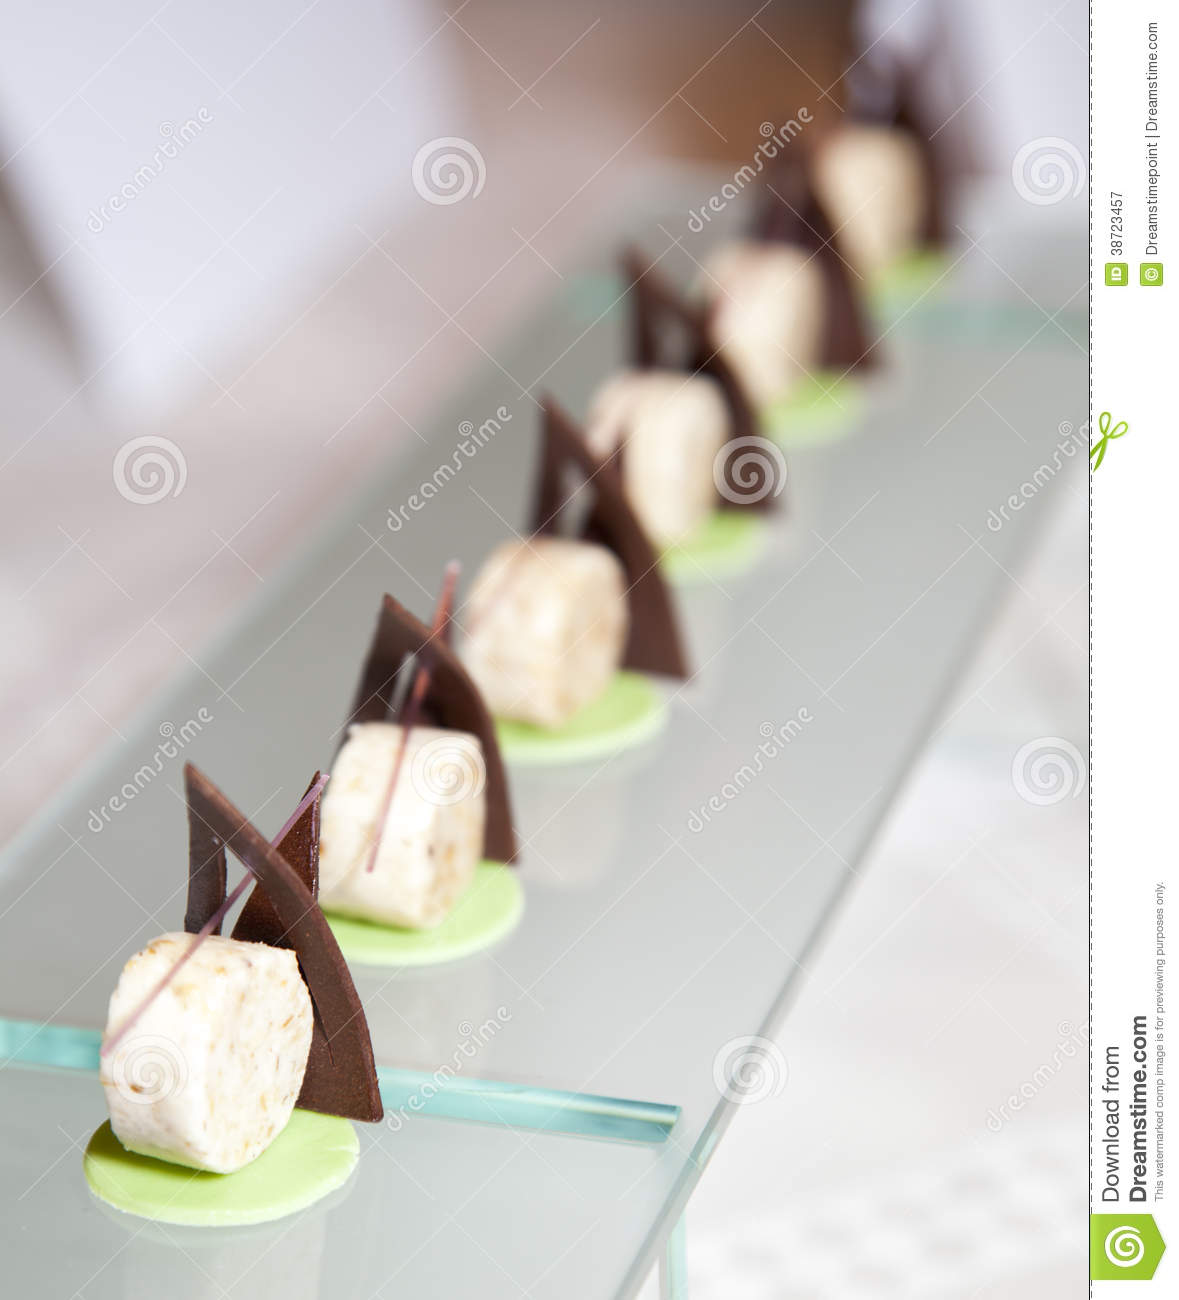 Delicious Modern Decorated Sweet Dessert Royalty Free Stock Photography